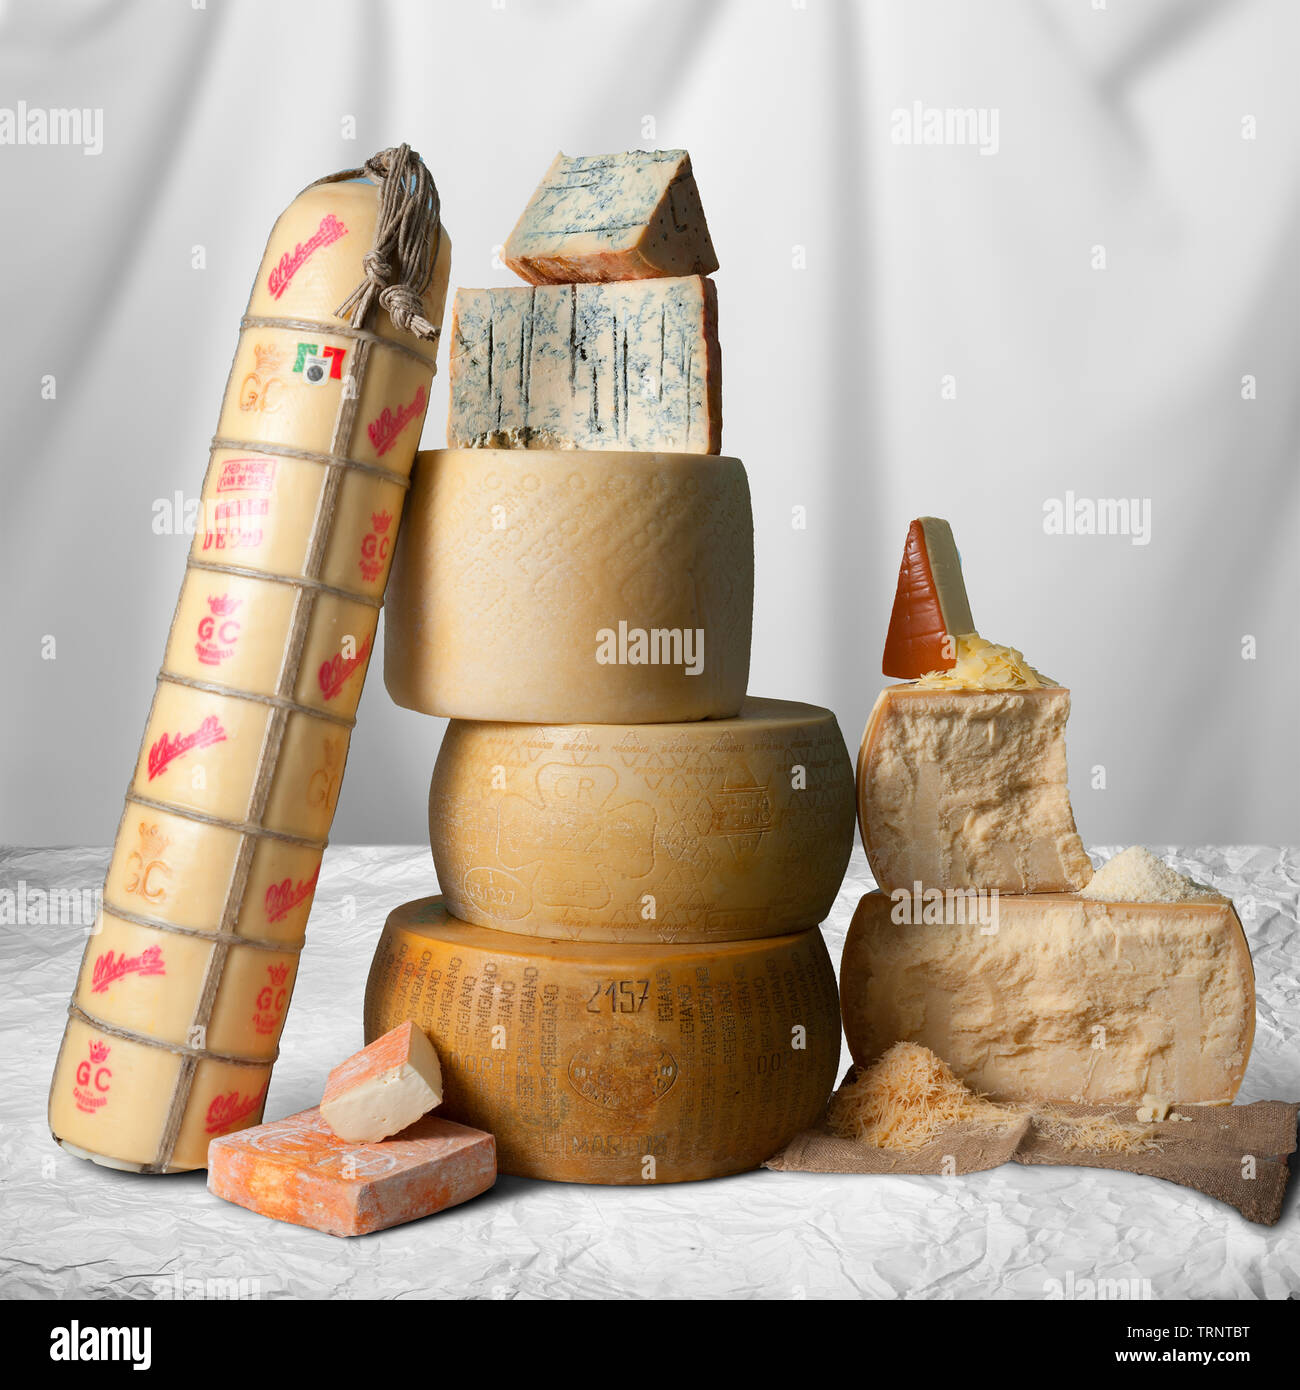 Imported Cheeses - Stock Image